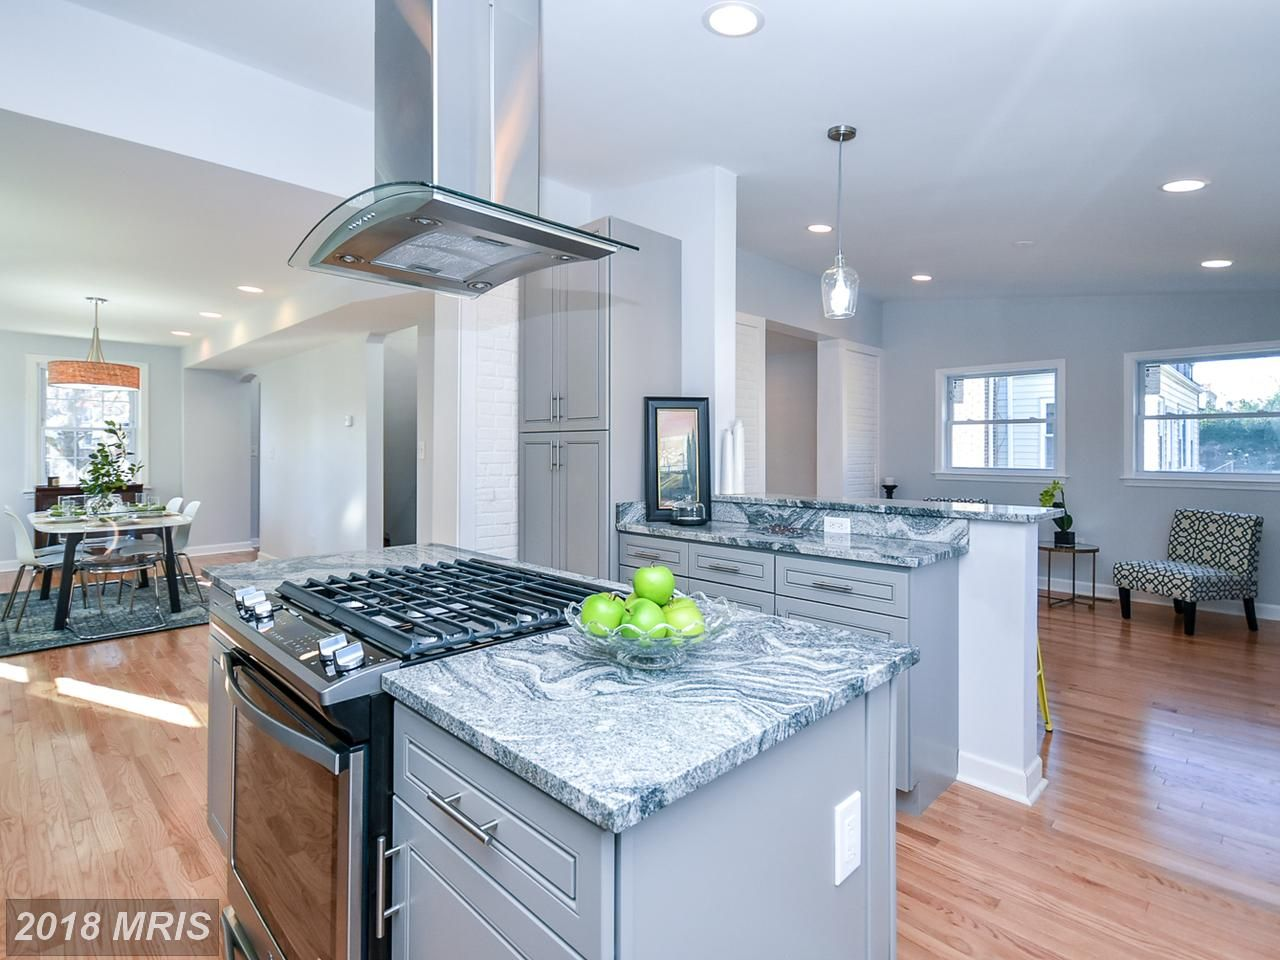 1632 Michigan Ave NE, Washington, DC 20017 | Trulia